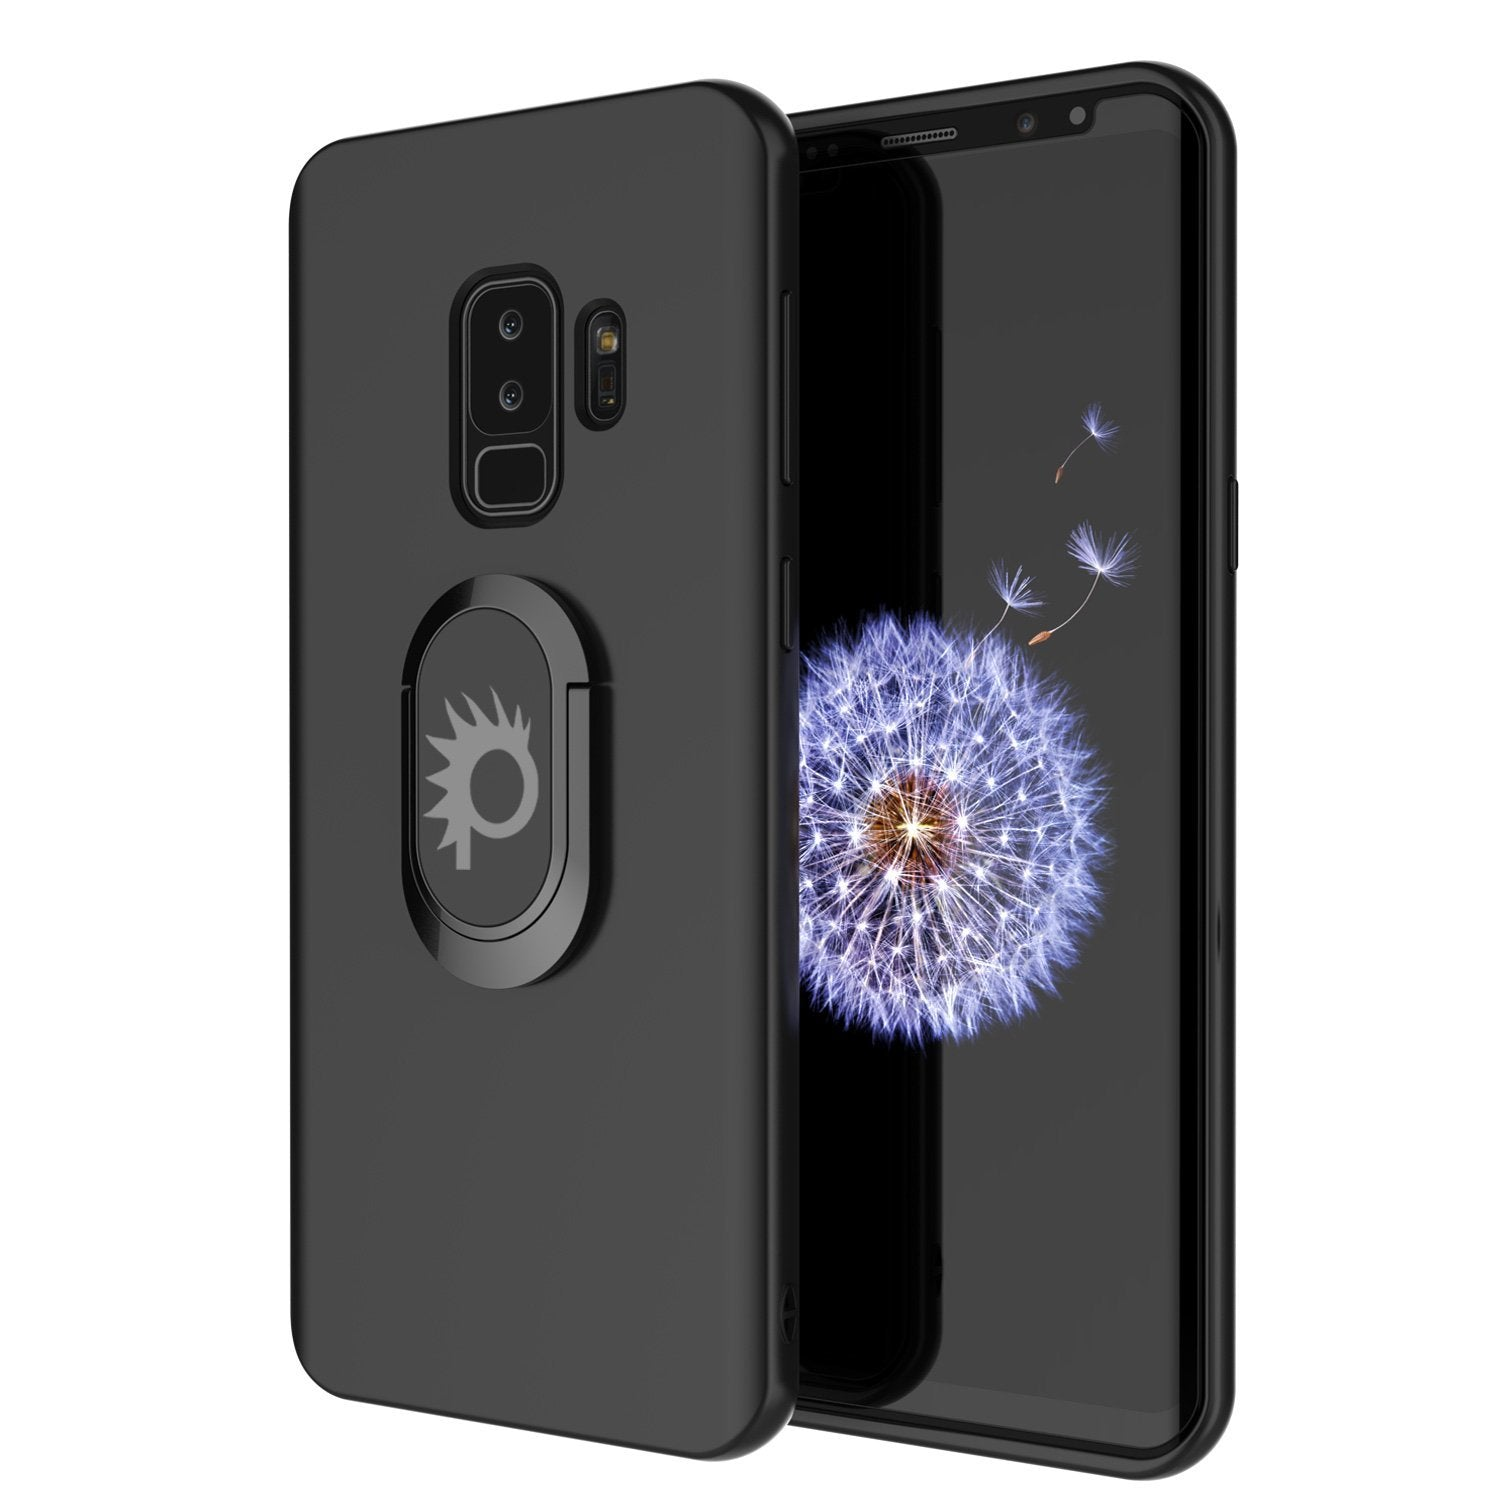 Galaxy S9 Plus, Punkcase Magnetix Protective TPU Cover W/ Kickstand, Sceen Protector[Black]